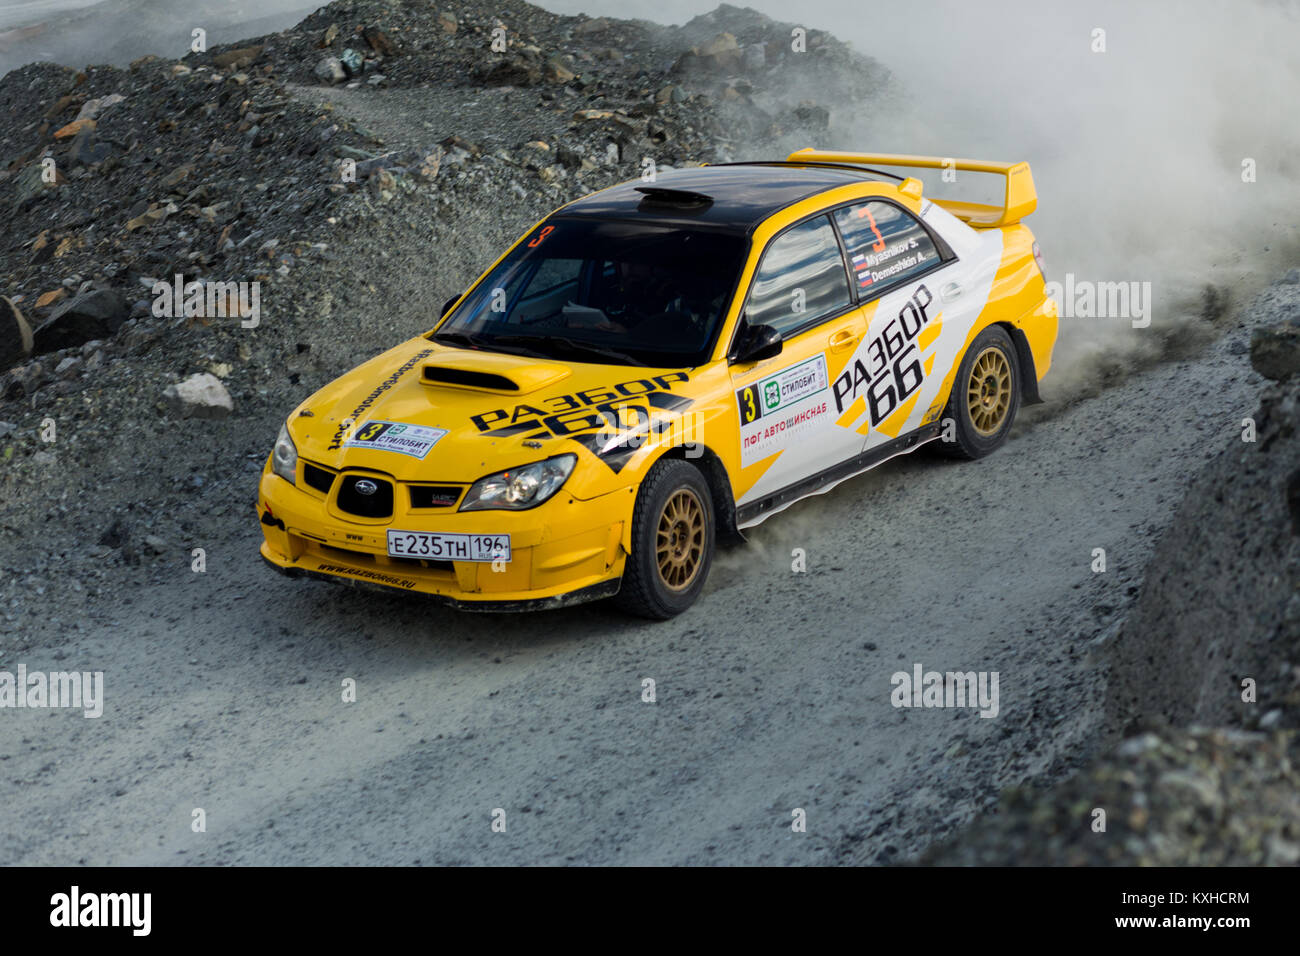 blue subaru impreza rally car stock photos blue subaru impreza rally car stock images alamy. Black Bedroom Furniture Sets. Home Design Ideas